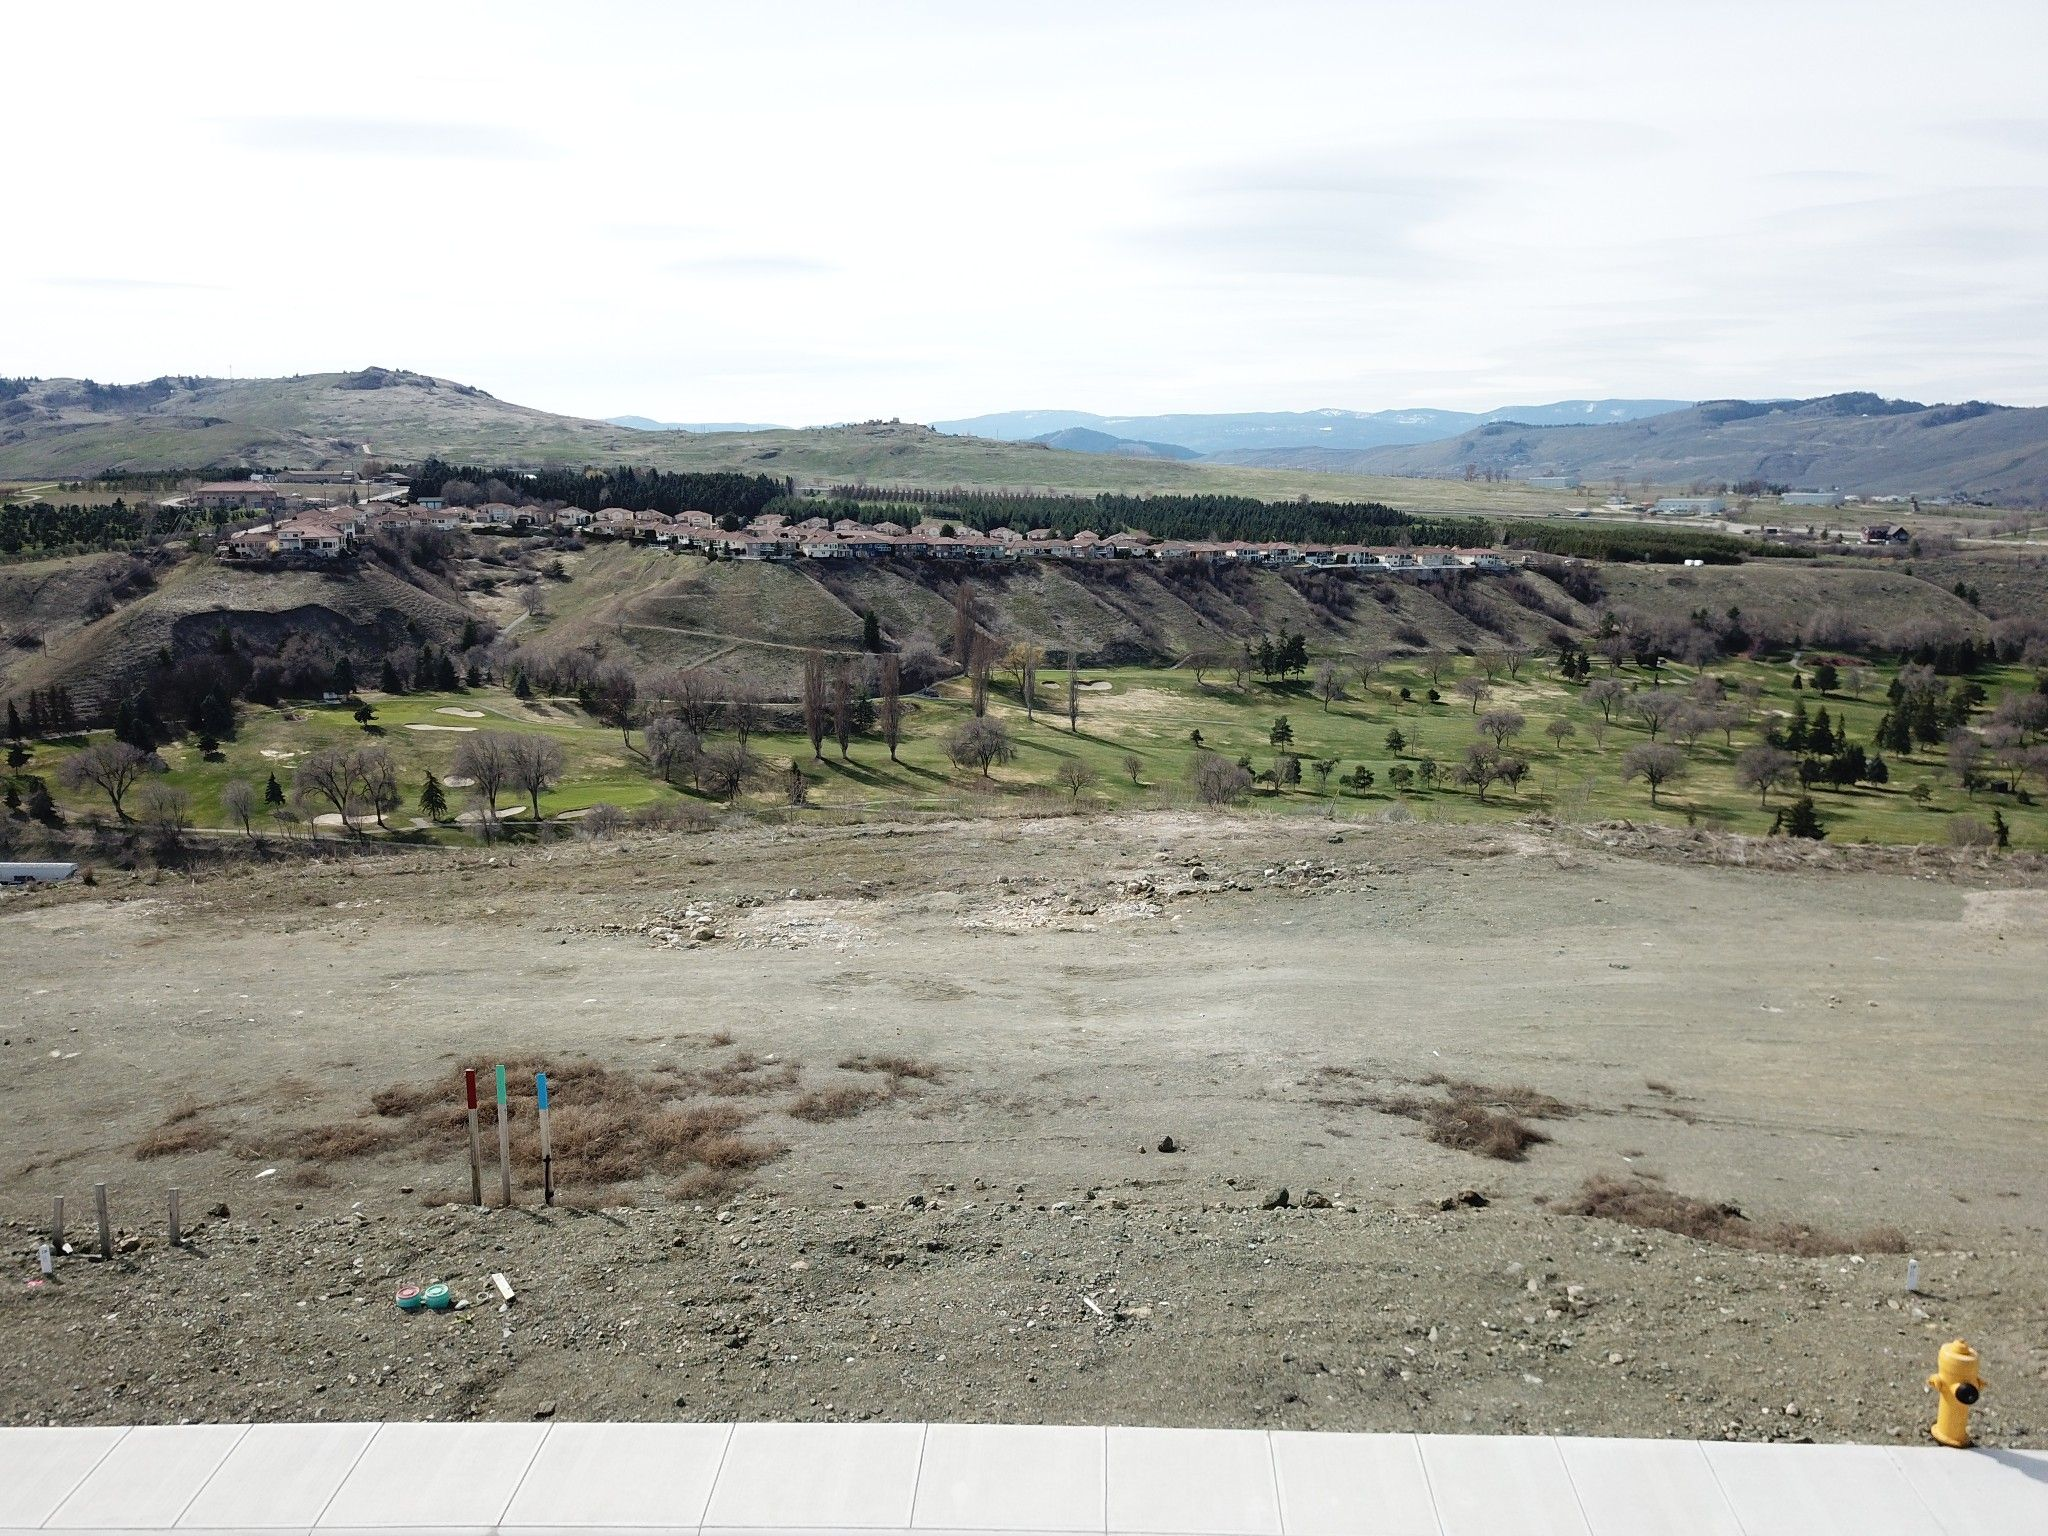 Main Photo: Lot 12 942 Mt Griffin Road in Vernon: Middlton Mtn Vacant Land for sale (North Okanagan)  : MLS®# 10215247